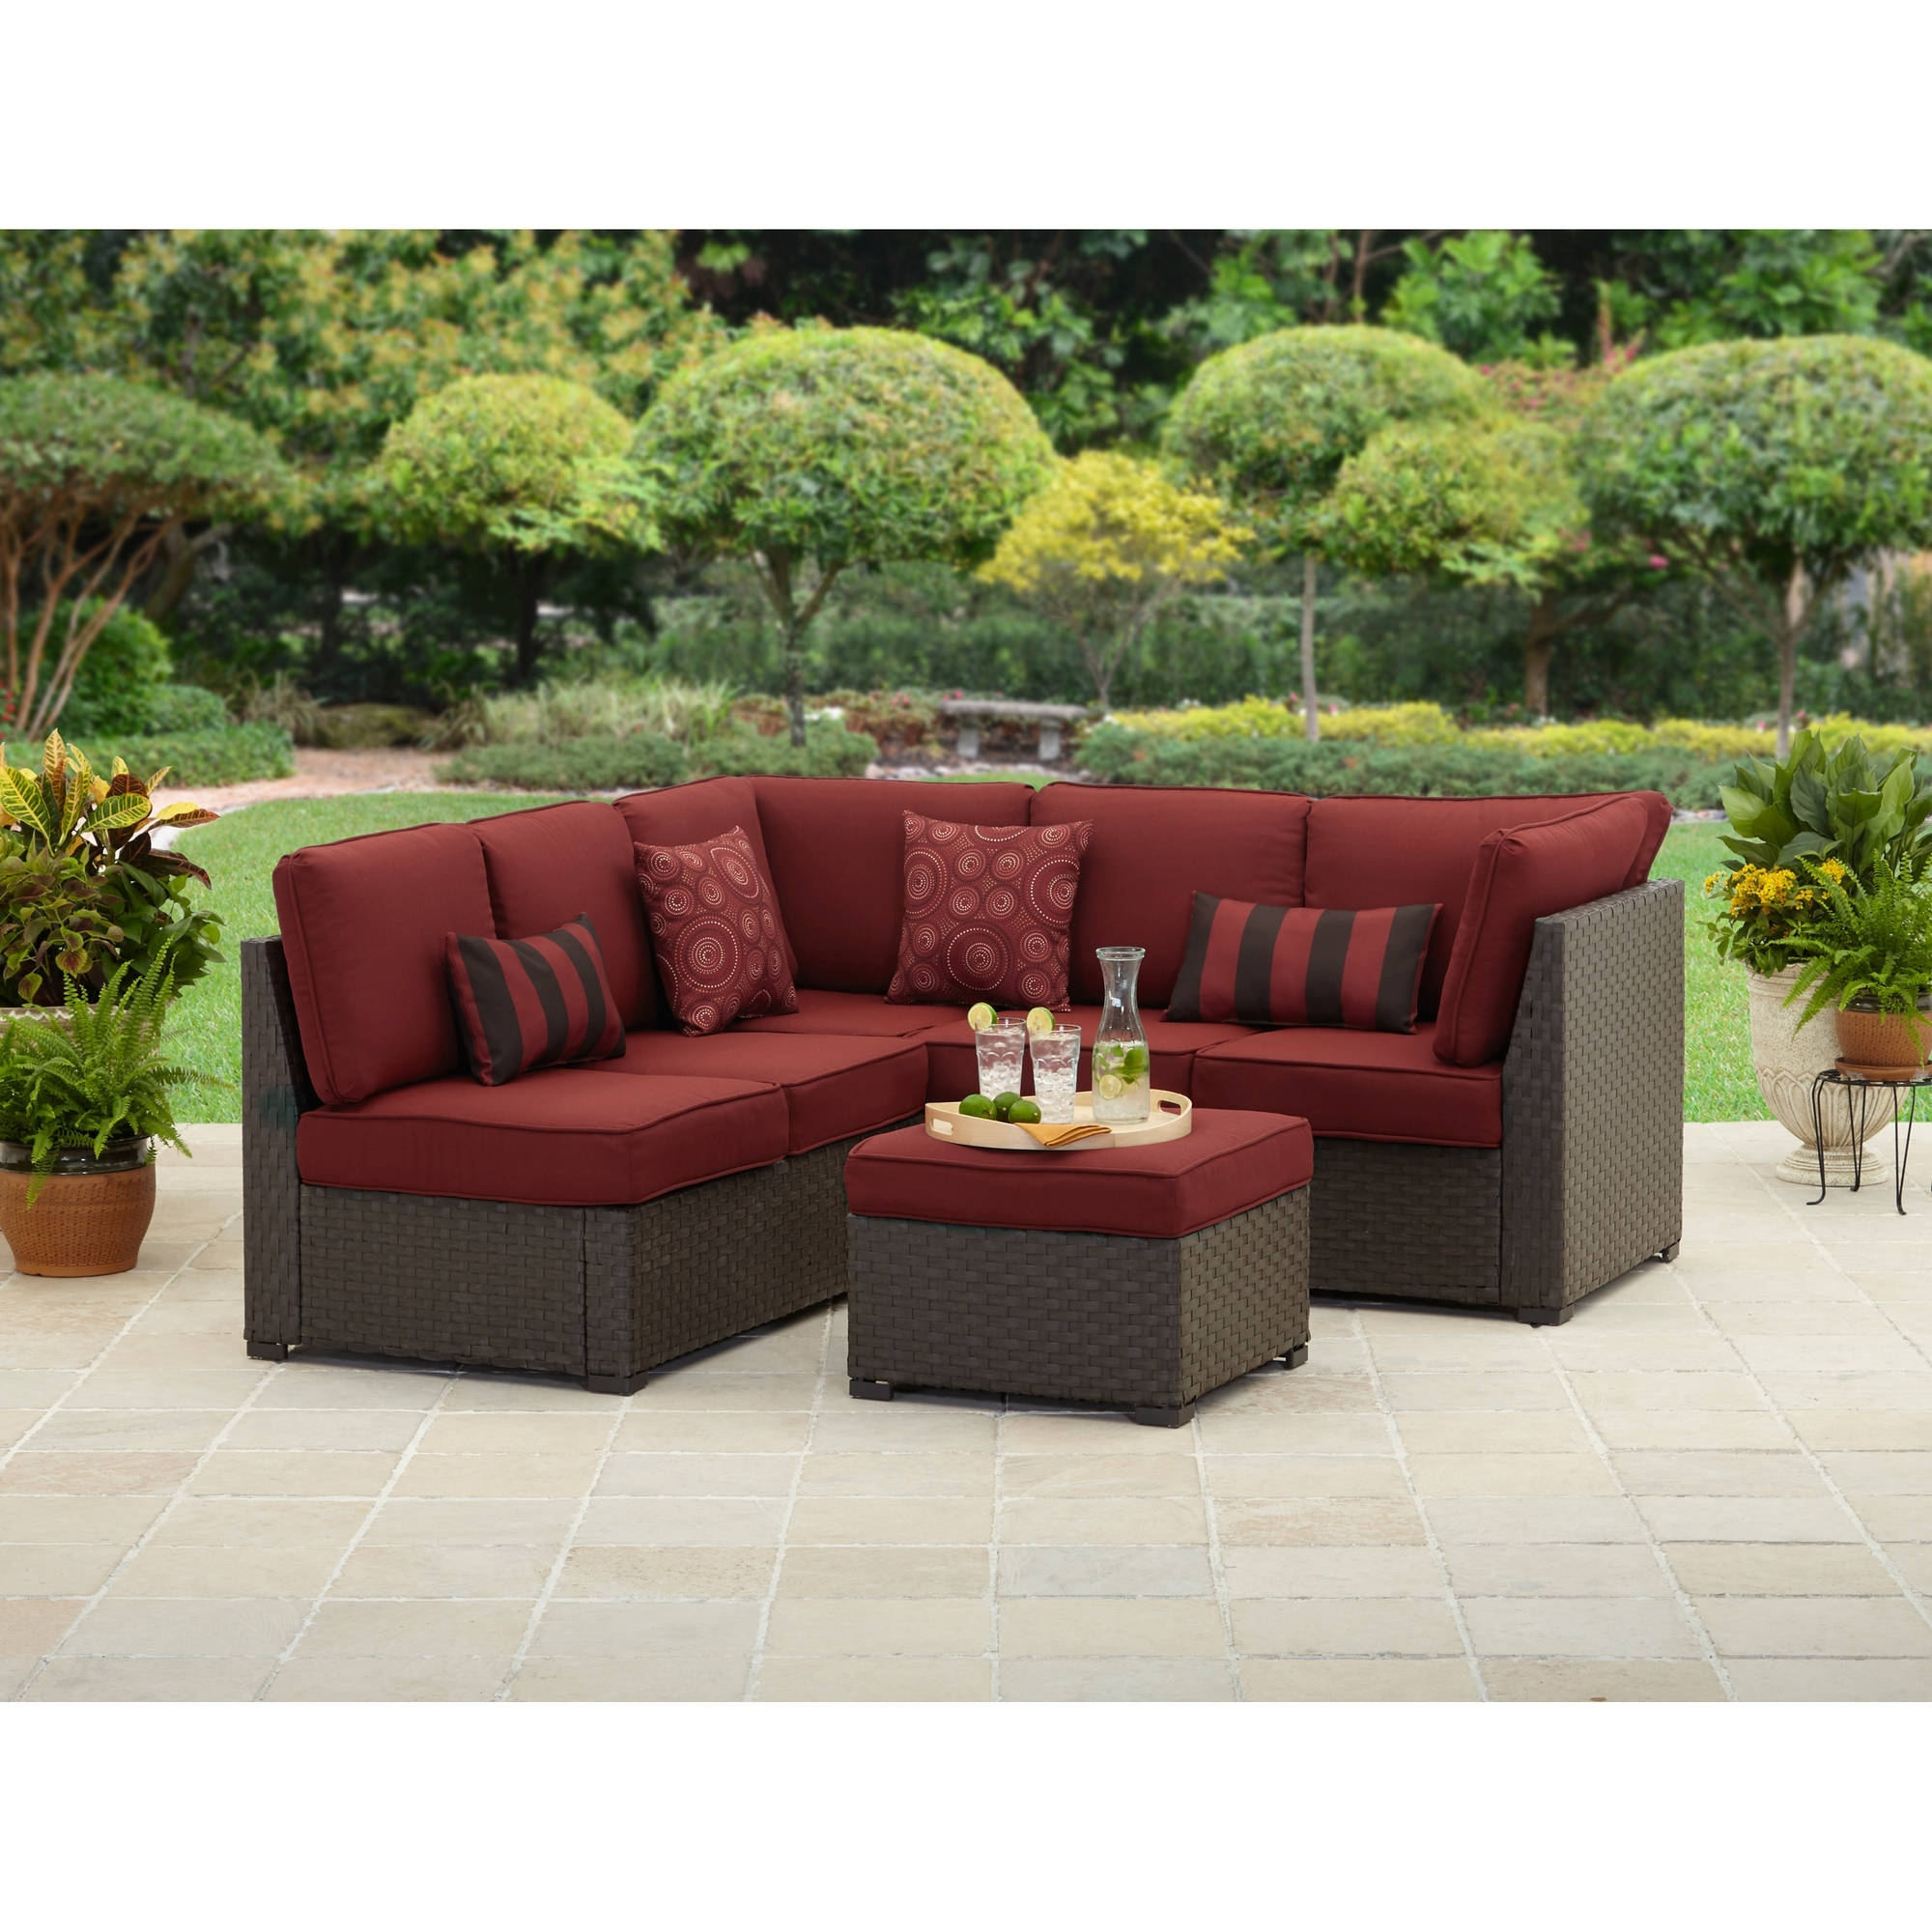 2019 Patio Conversation Sets Clearance Patio Conversation Sets Under 300 In Target Patio Furniture Conversation Sets (View 1 of 20)